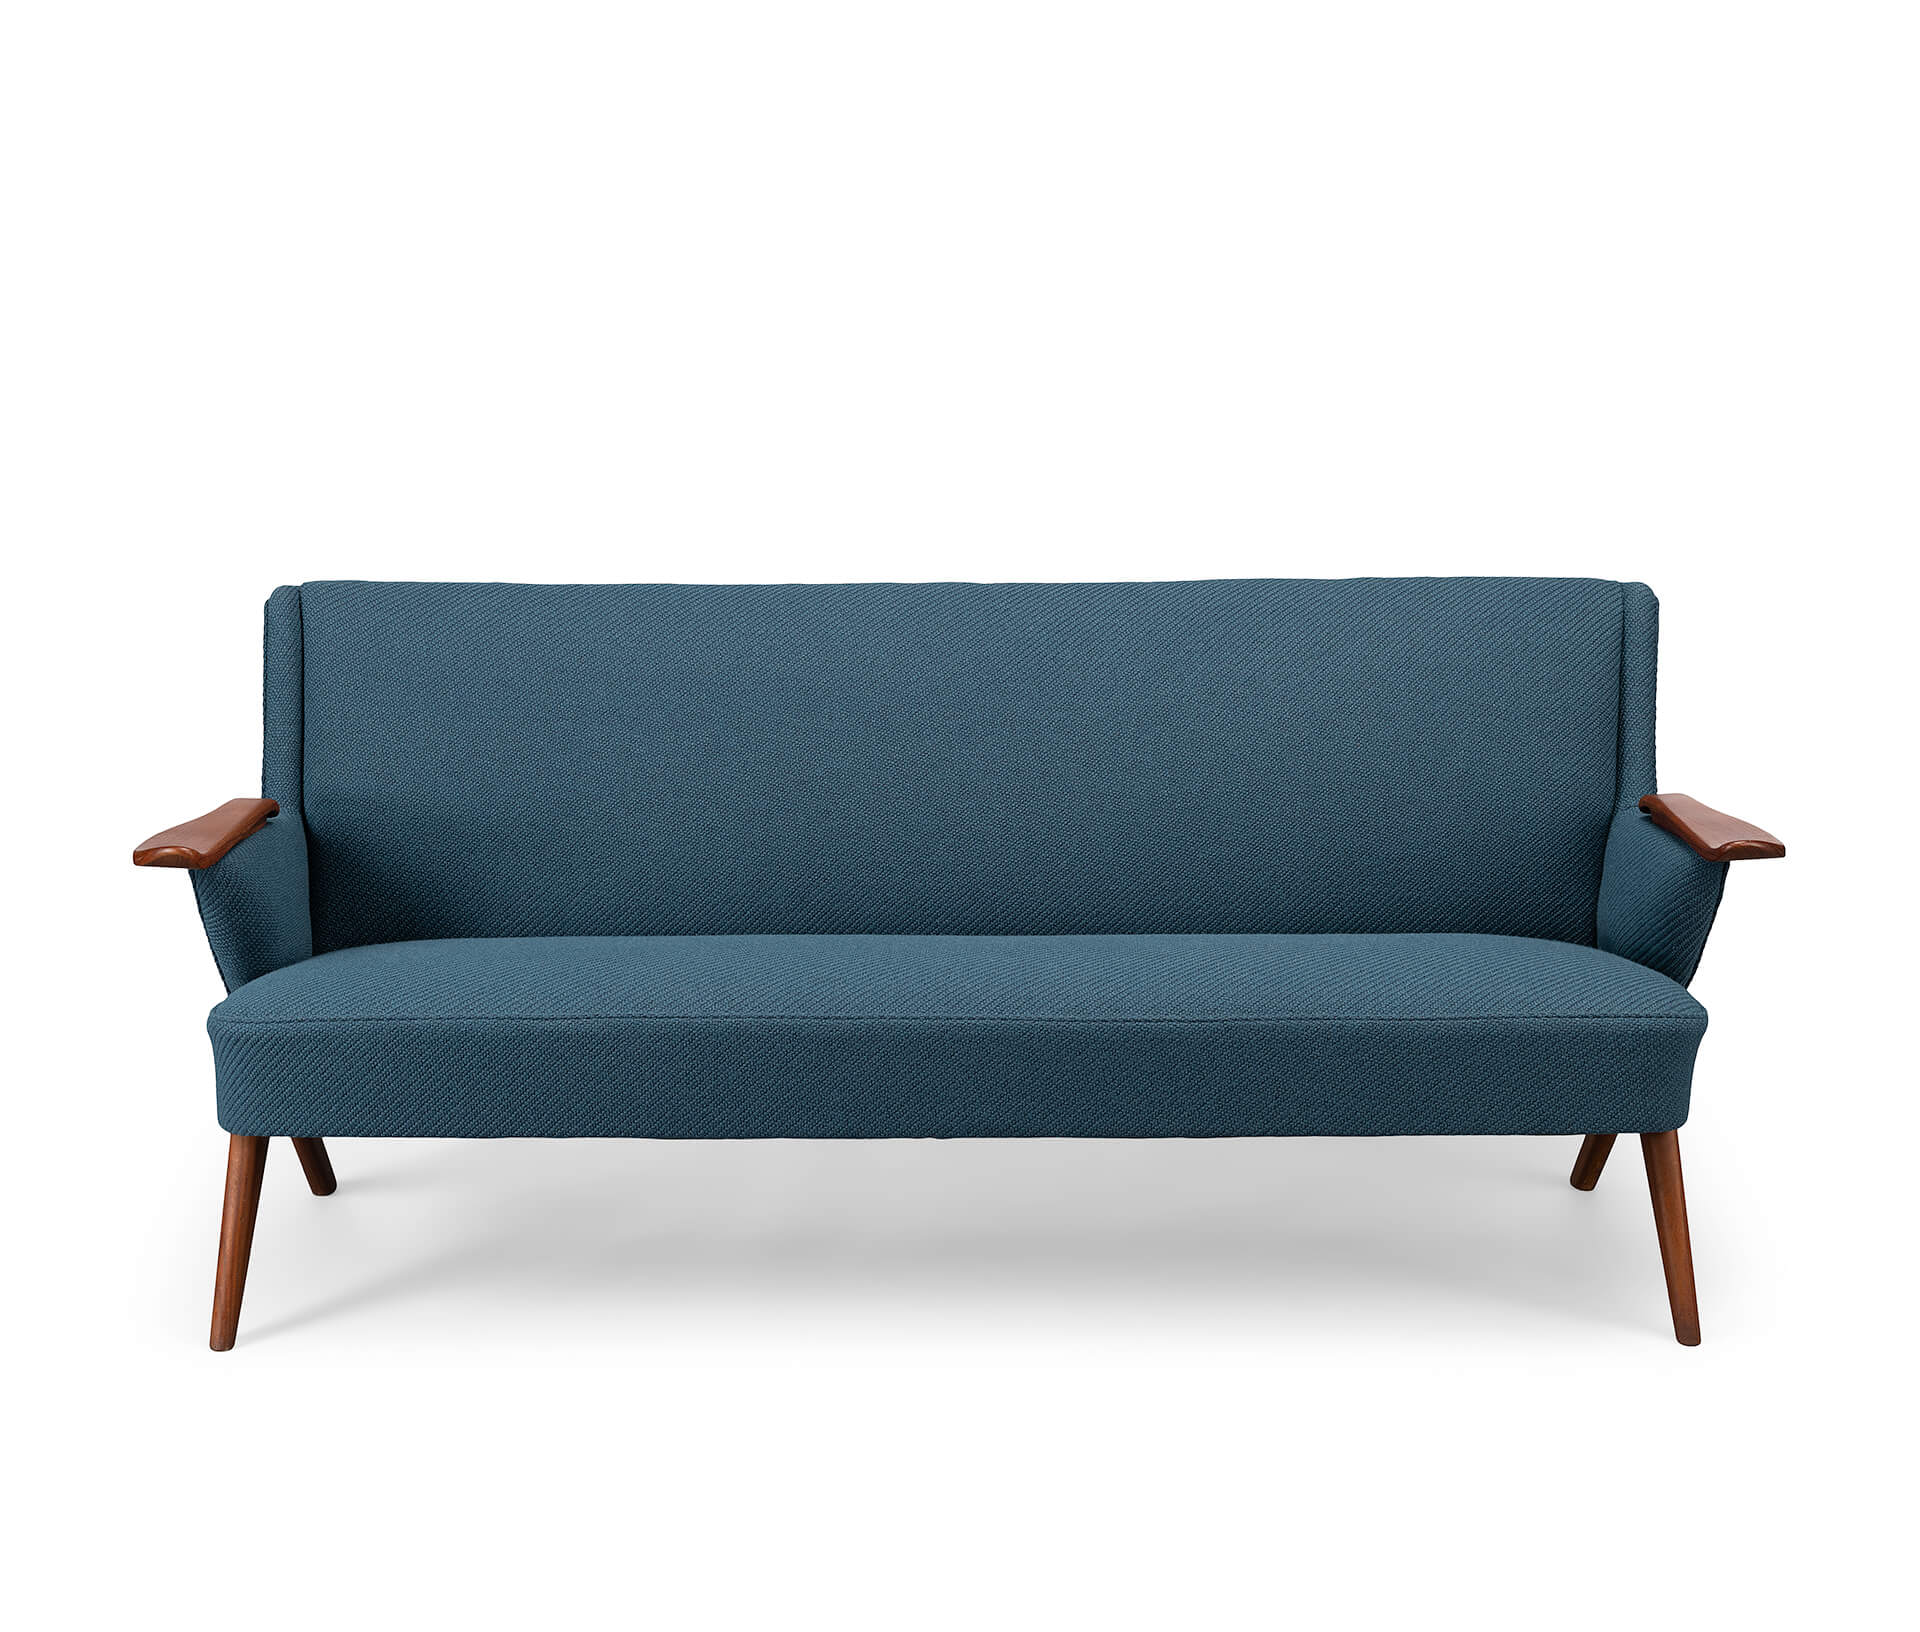 Edgy petrol blue sofa